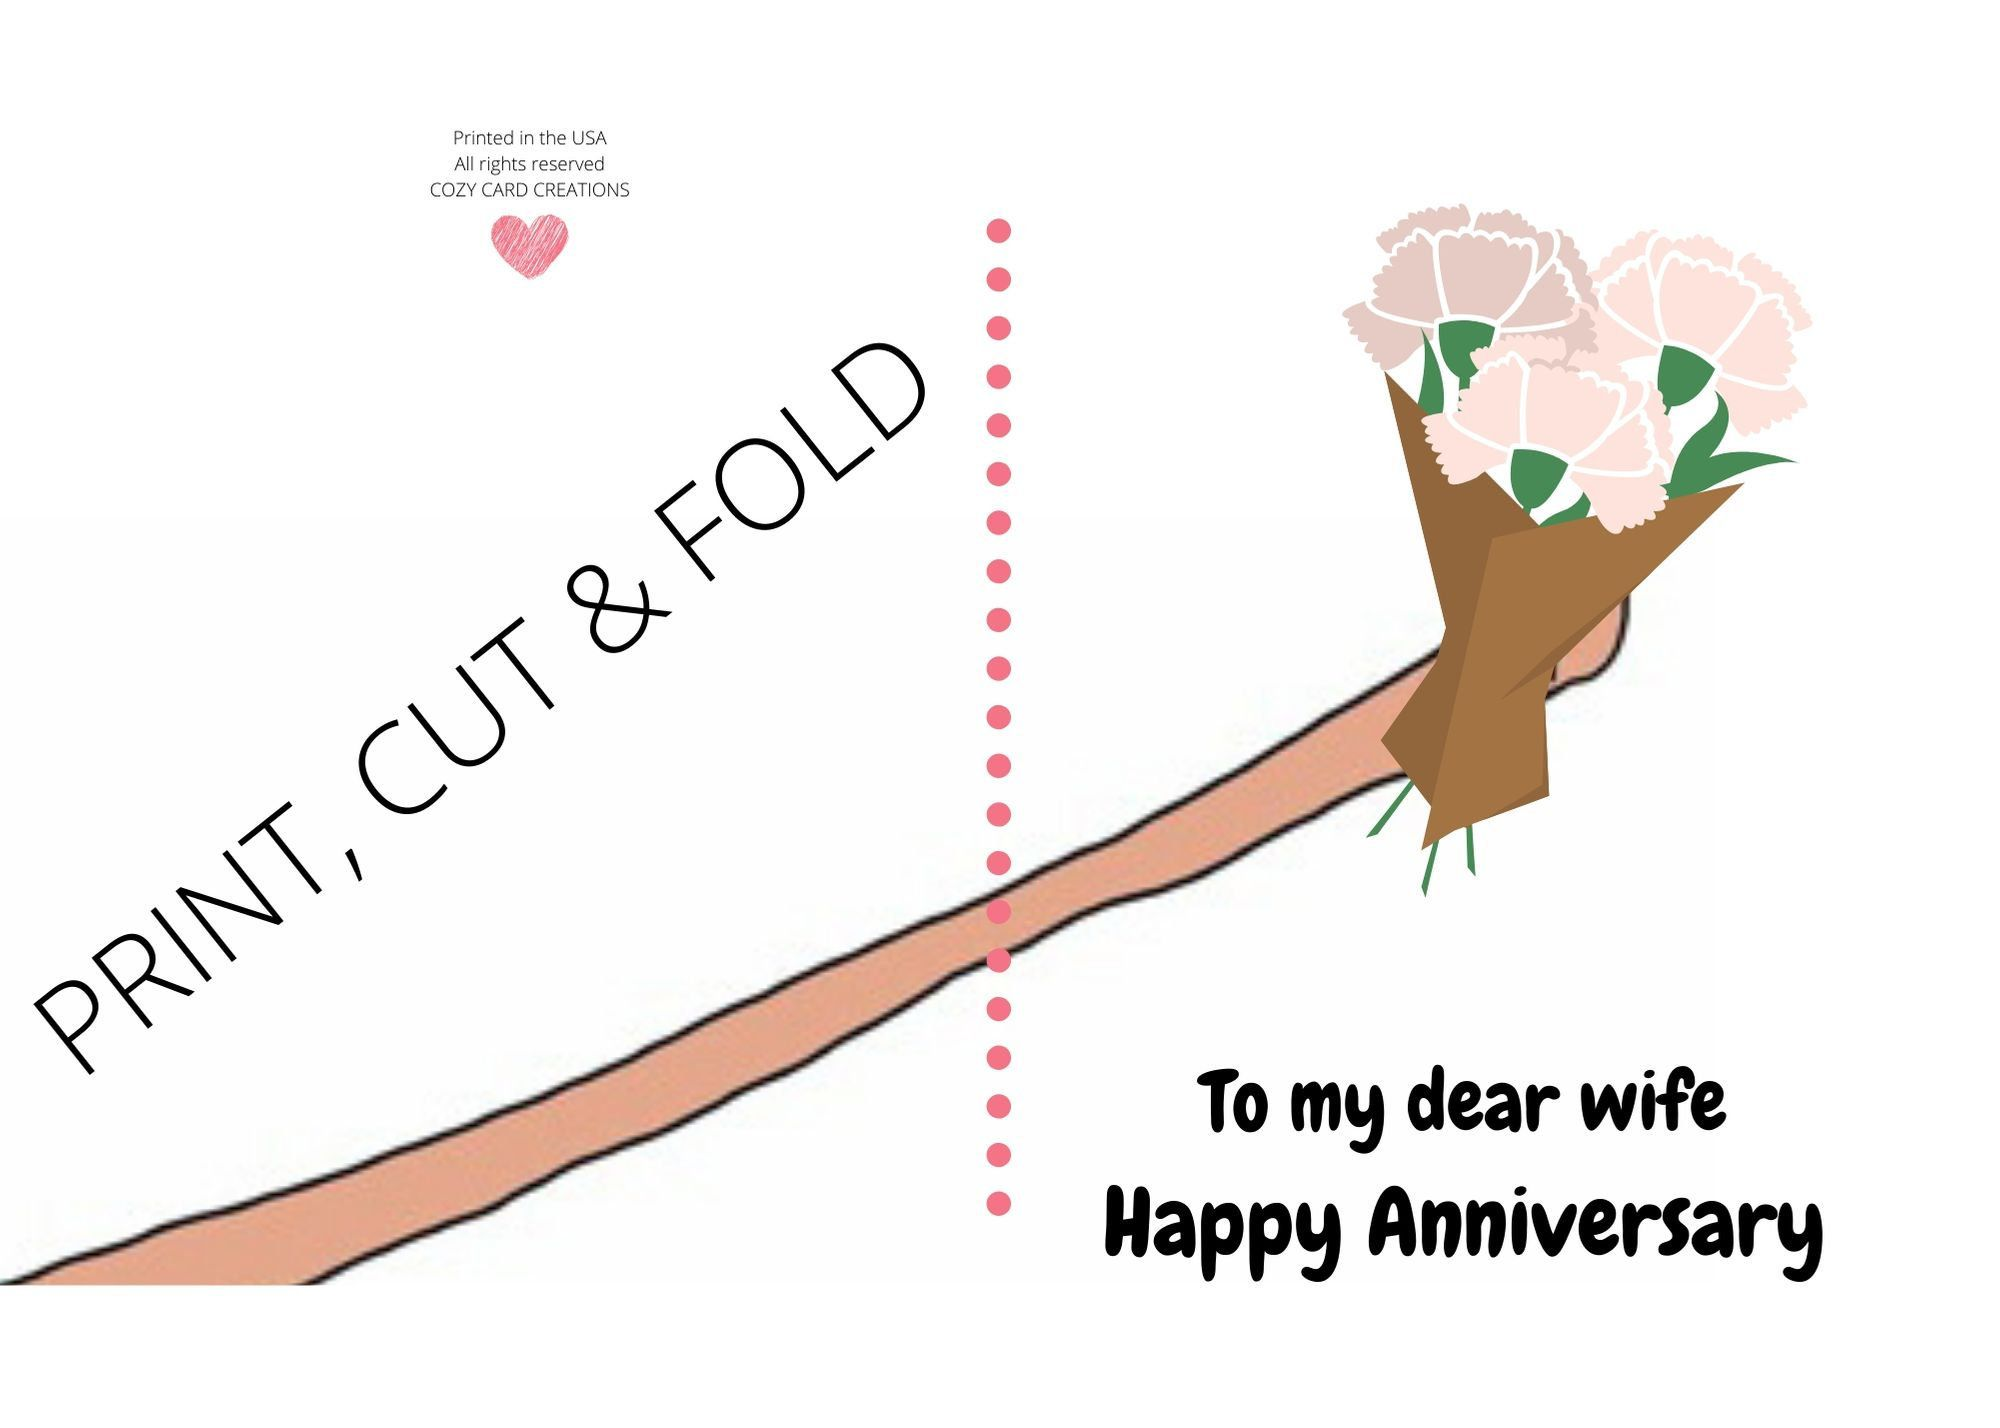 Happy Anniversary Card For Wife Printable Happy Anniversary Card For Her Anniversary Cards For Wife Anniversary Cards For Husband Anniversary Greeting Cards